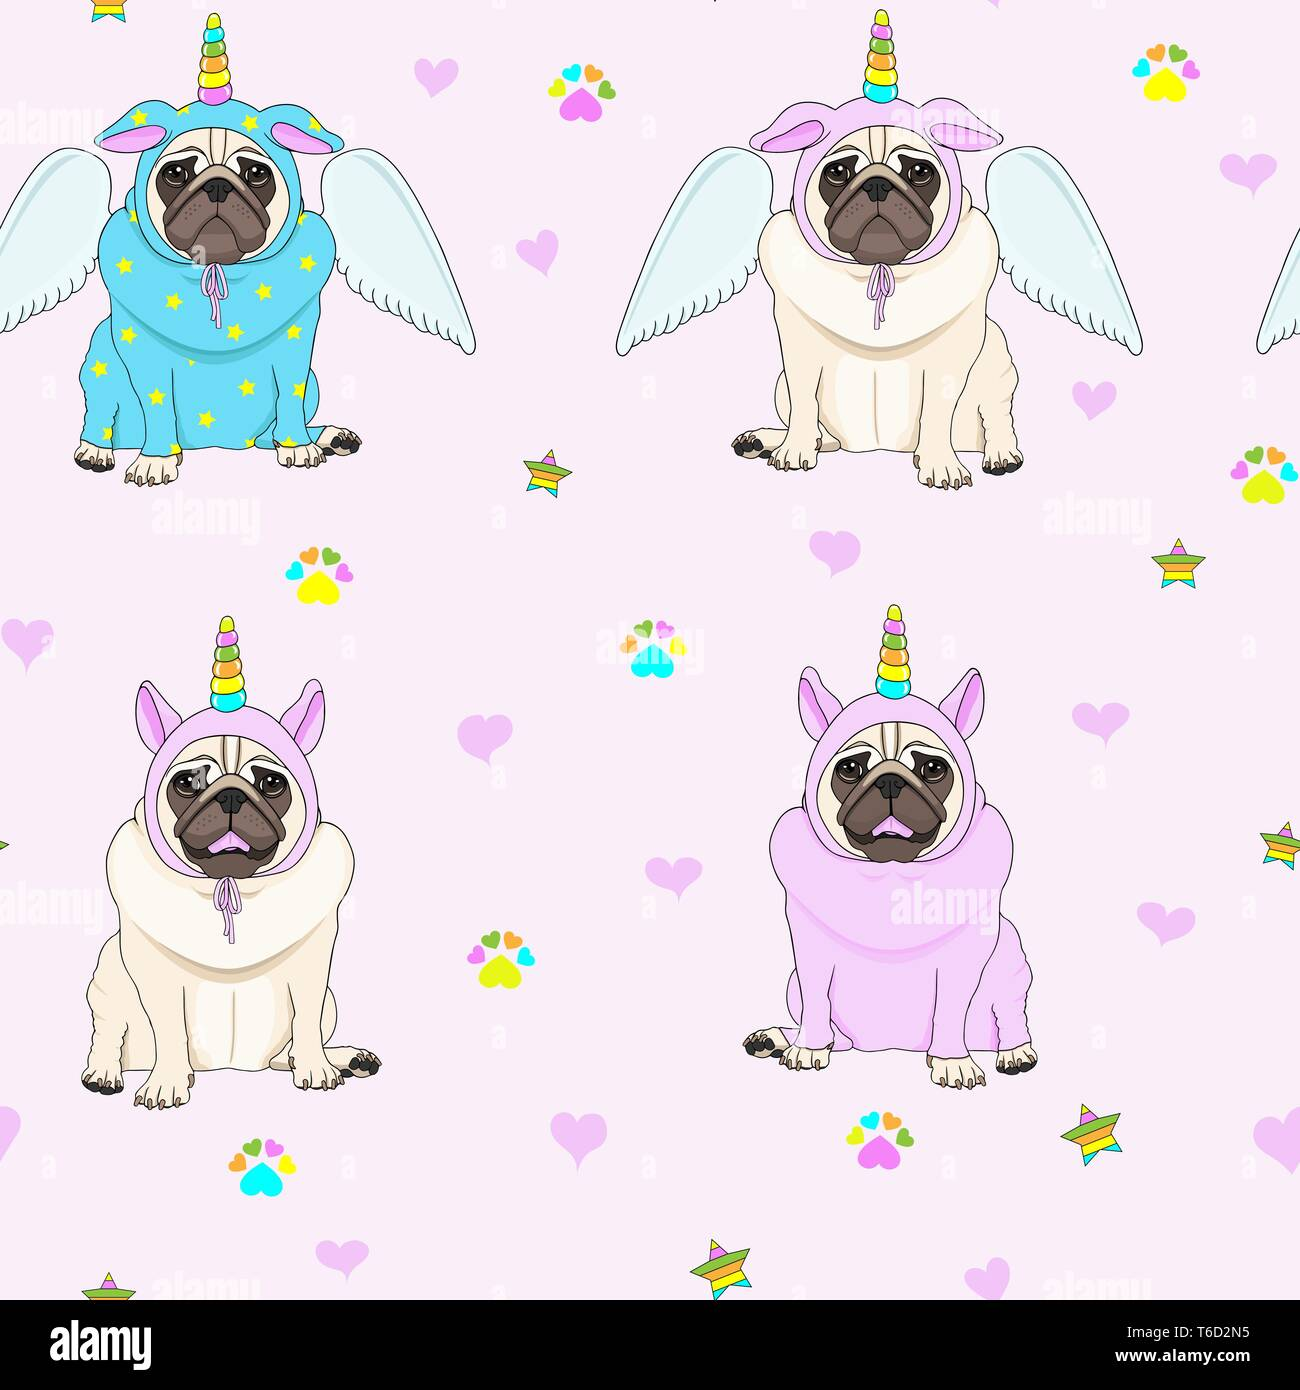 cute seamless pattern with unicorn pug dogs, paw print, stars and hearts, transparent background Stock Vector